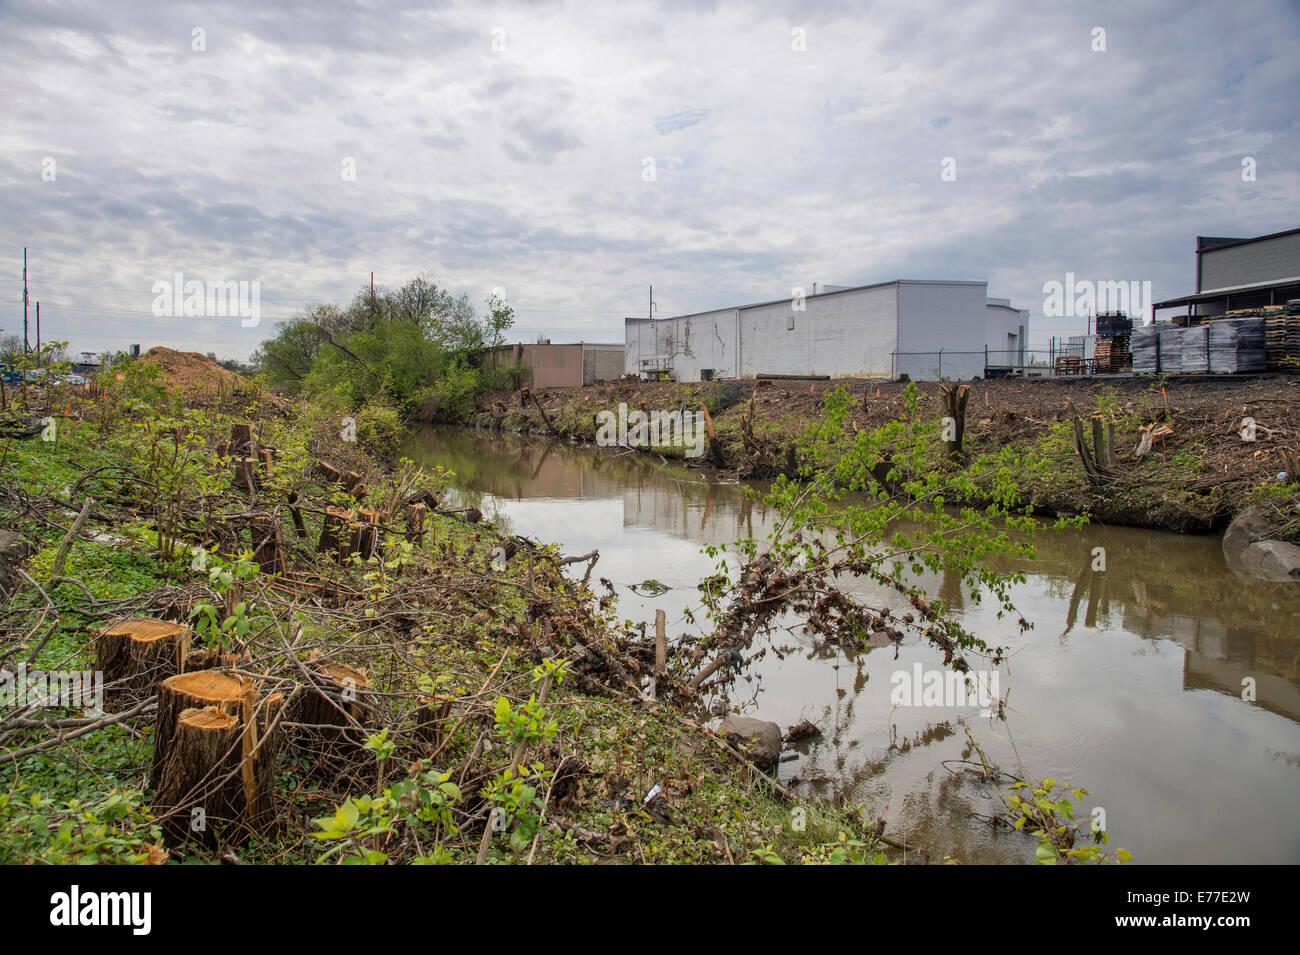 Trees Cut Down And Vegetation Removed Along Stream - Stock Image